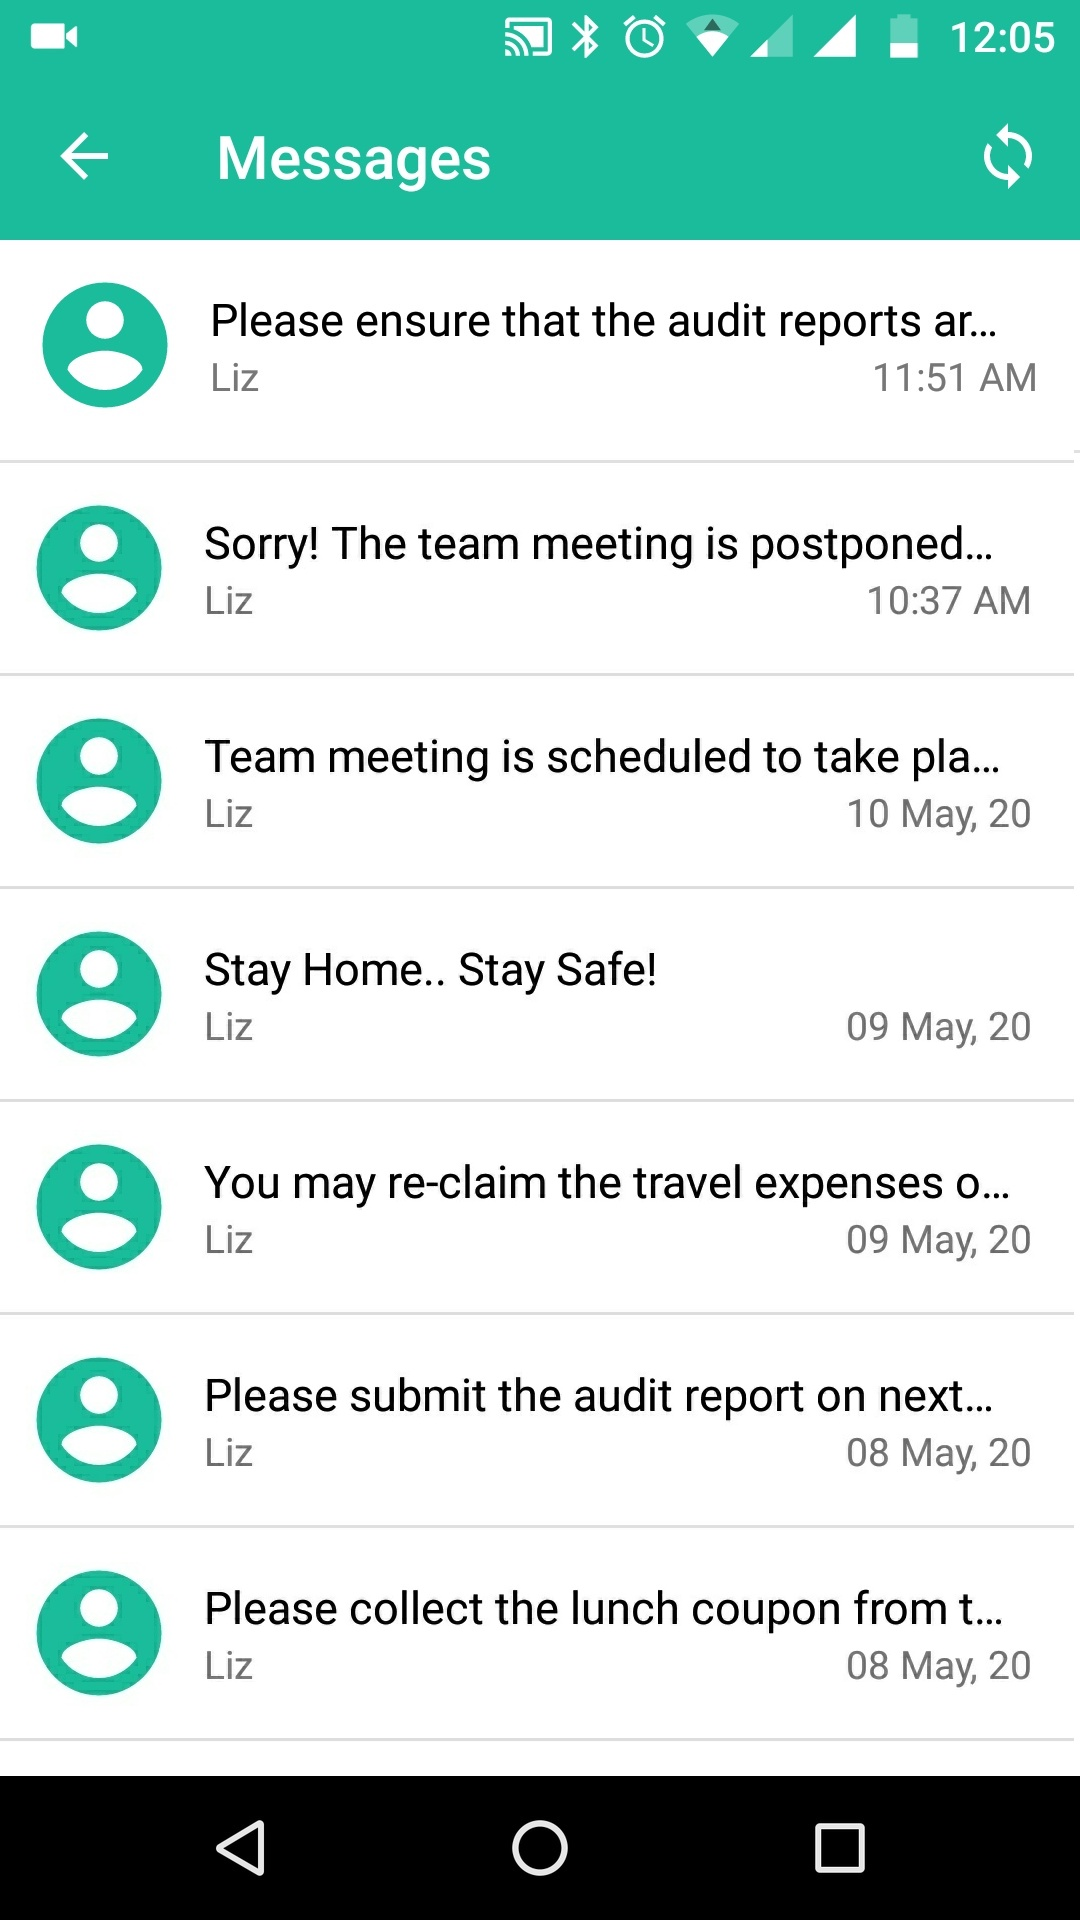 Messages from Hexnode messenger listed in device